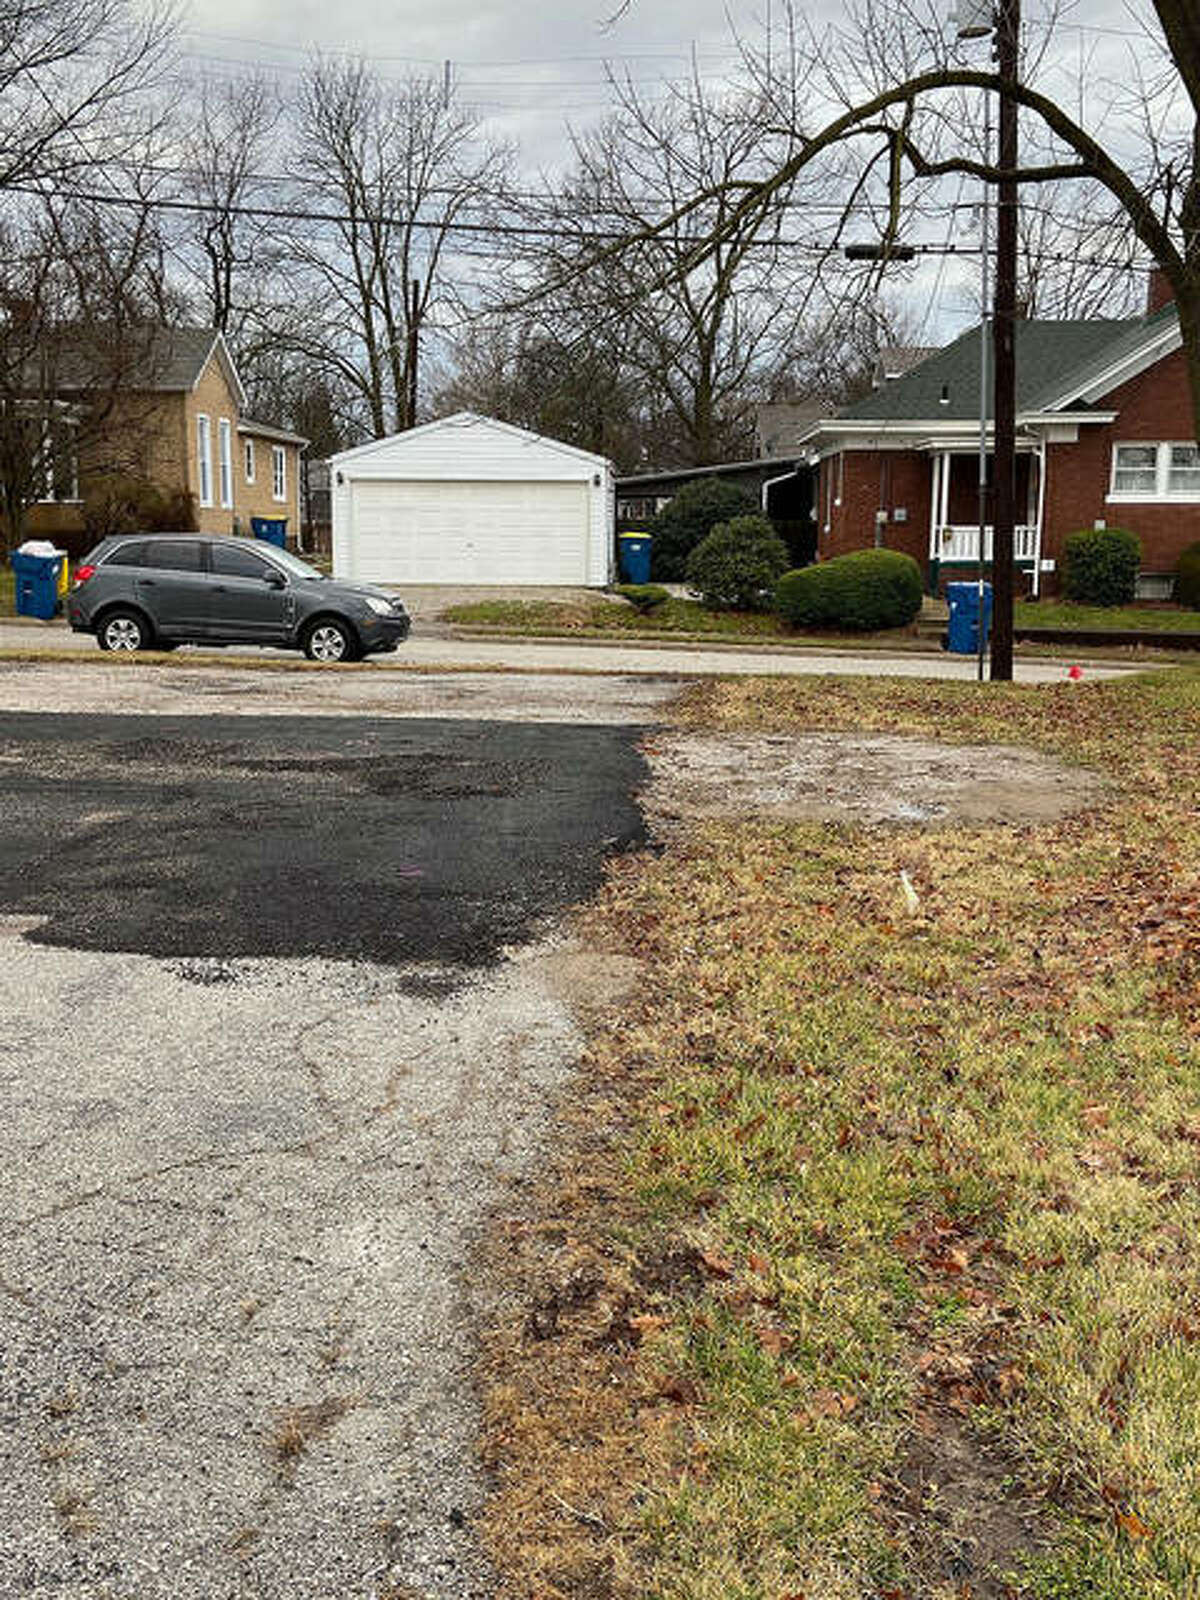 While currently patched for parking lot access, this sinkhole on the Crane Street side of Edwardsville Township's property reportedly has a buried furnace or boiler from a church that once stood on this site.